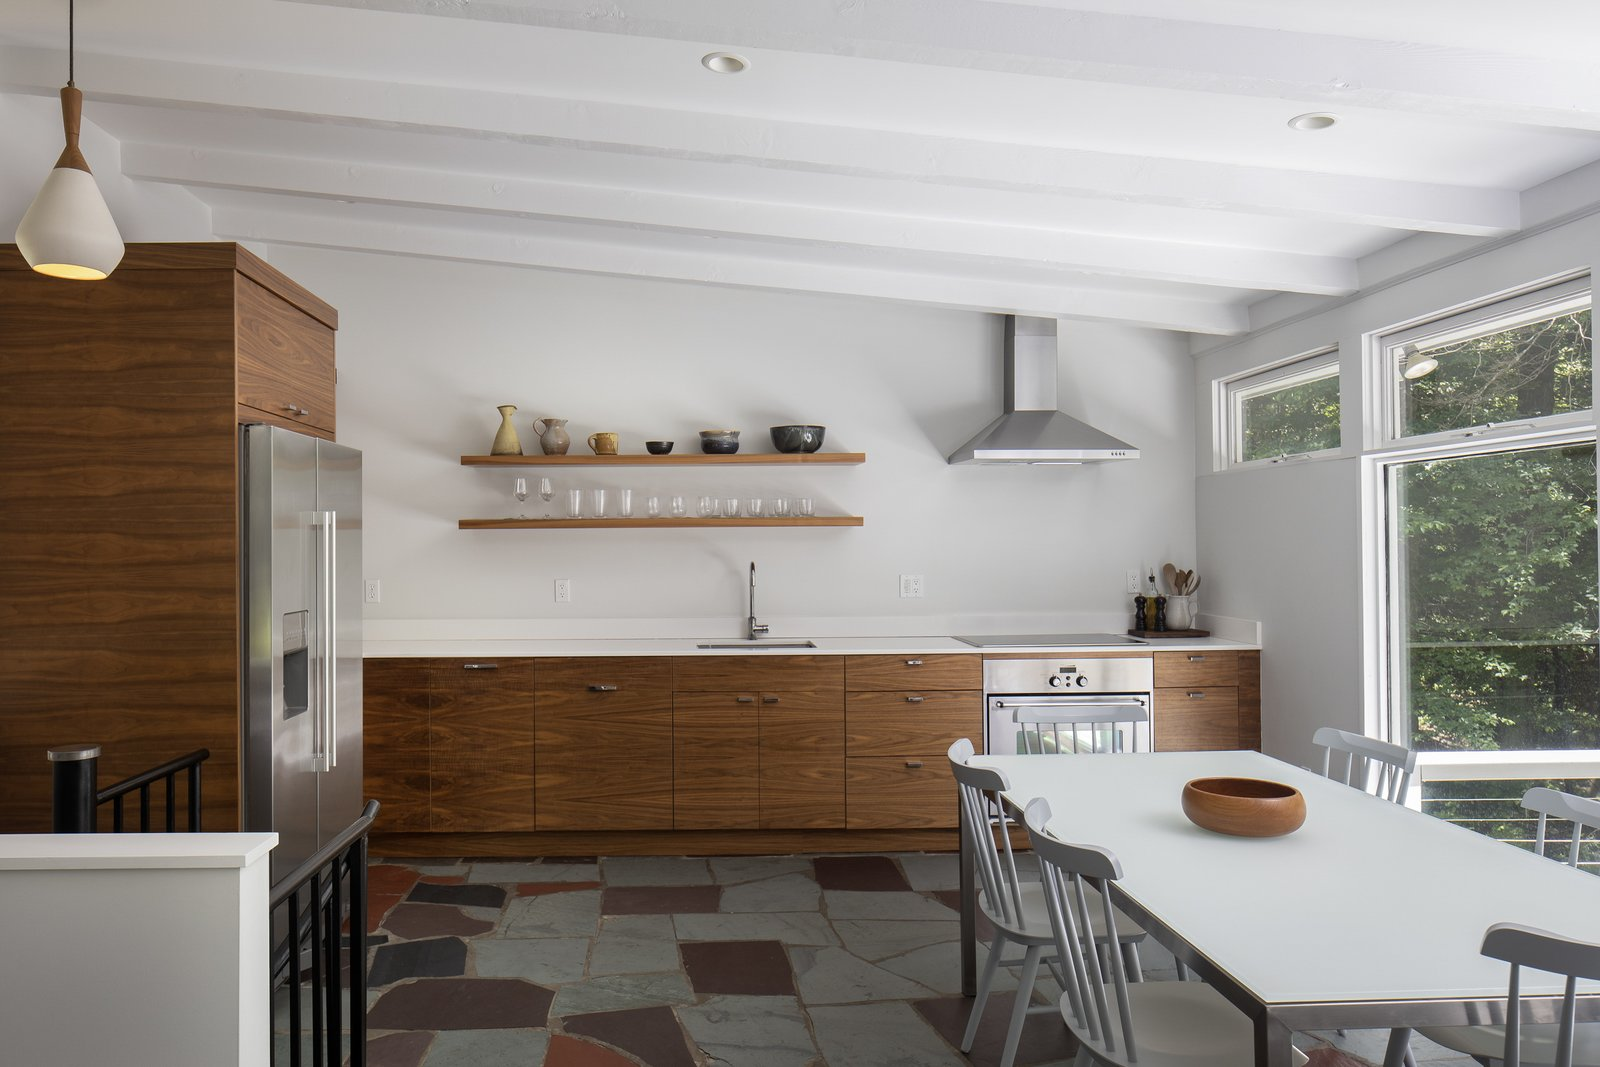 The renovated kitchen features all-new cabinetry and appliances. Open shelving takes the place of upper cabinetry, adding to the airy feeling.  Photo 5 of 15 in For $1.35M, Snag This Renovated Midcentury Retreat Nestled in a Hardwood Forest